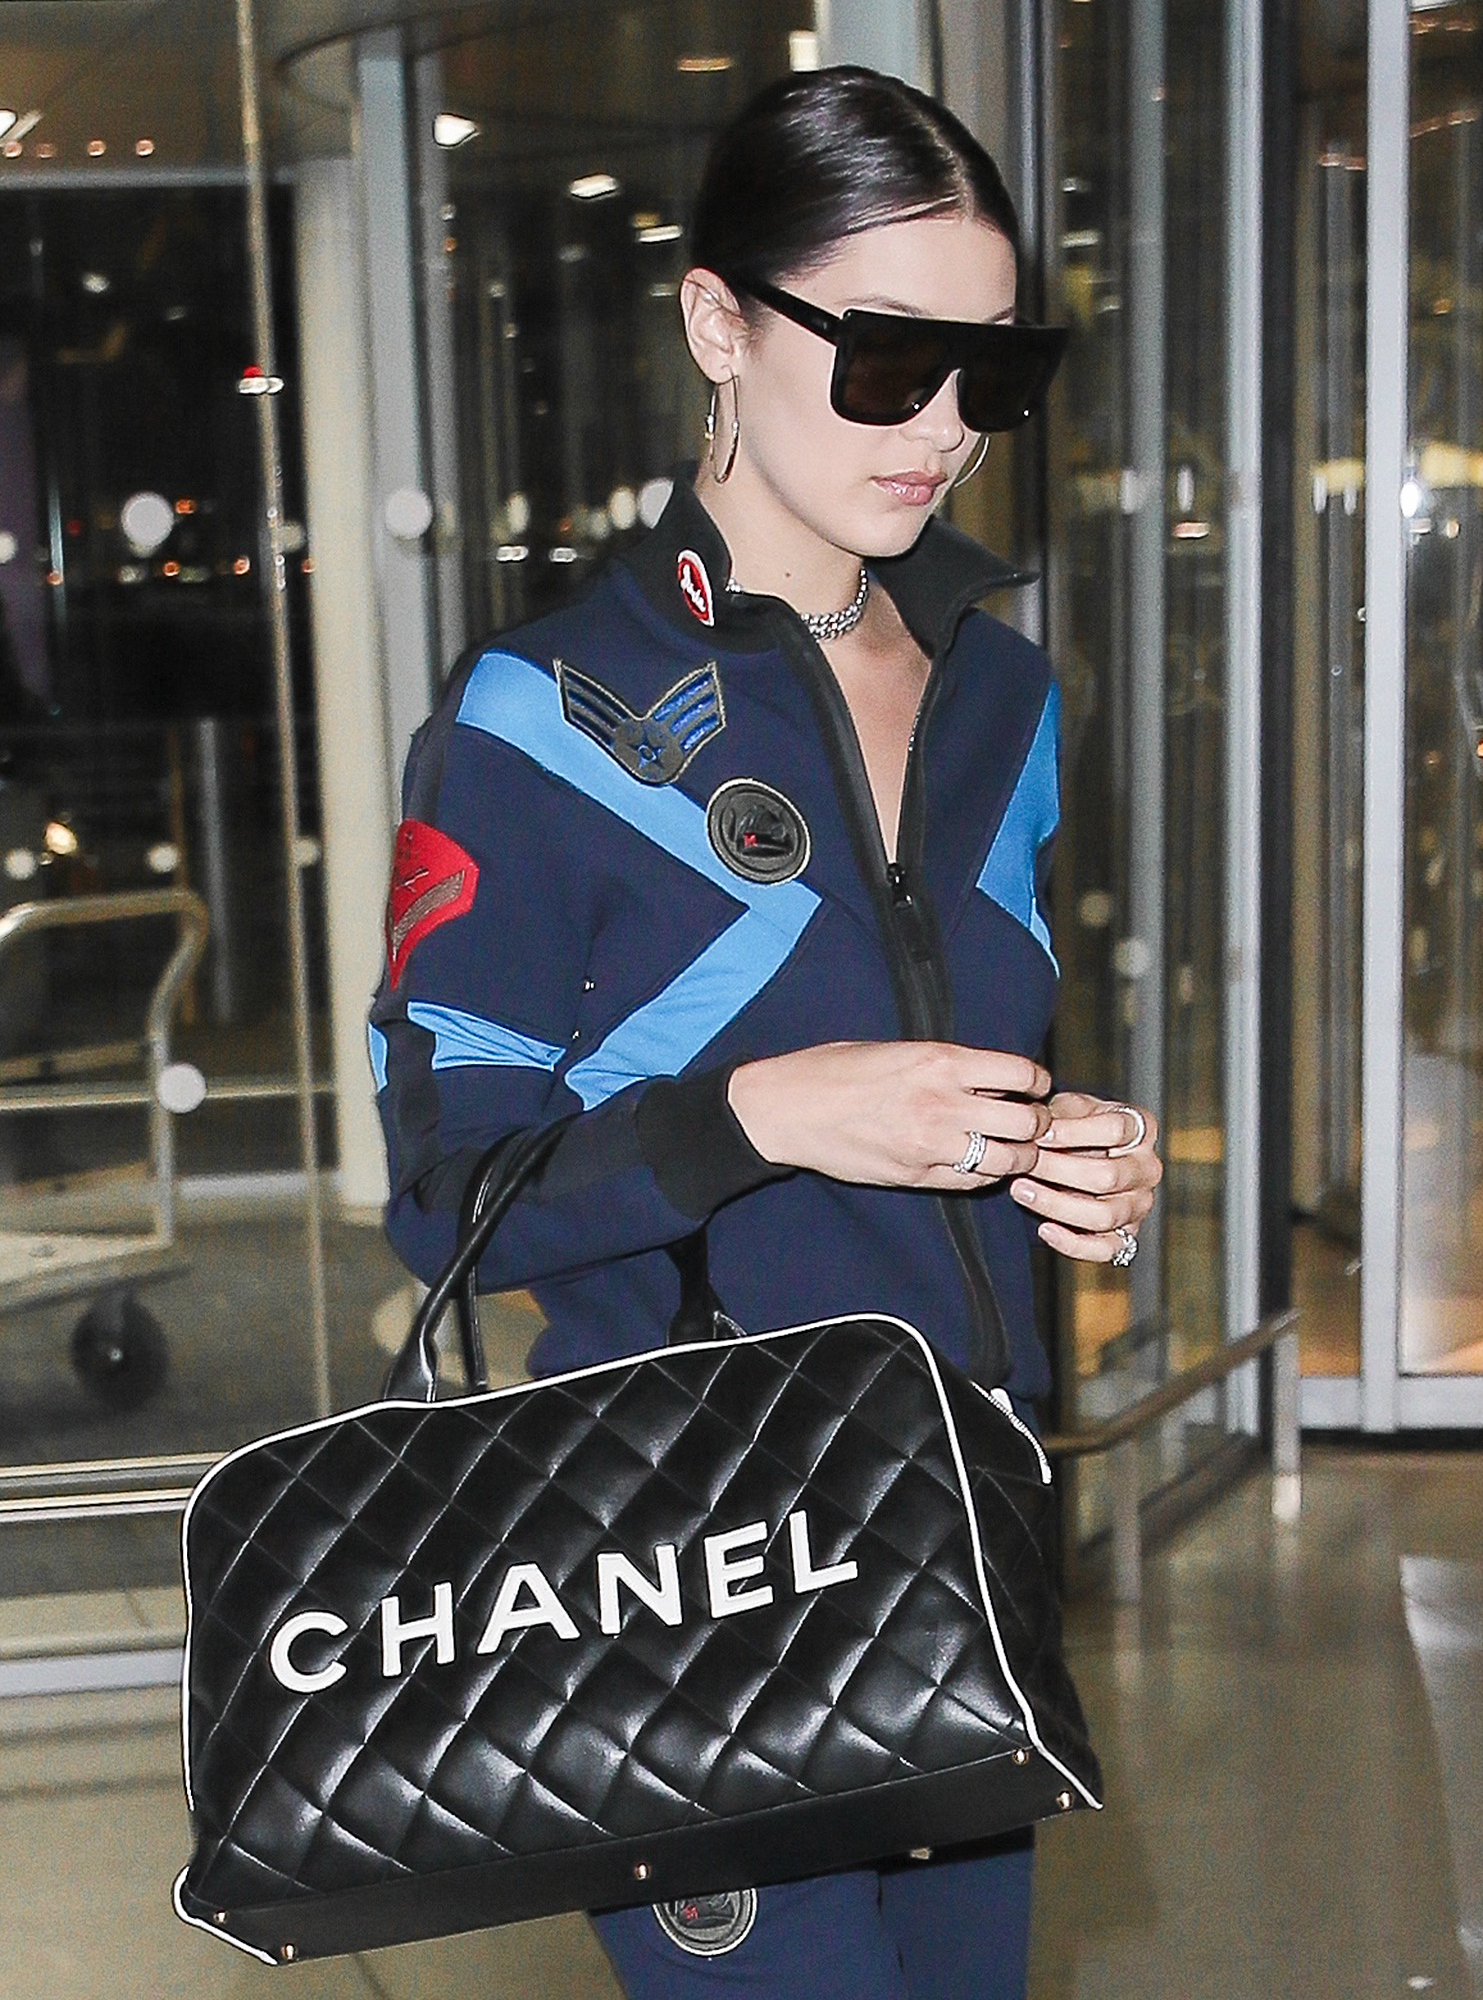 EXCLUSIVE: Bella Hadid wears a flight suit as she jets from JFK airport